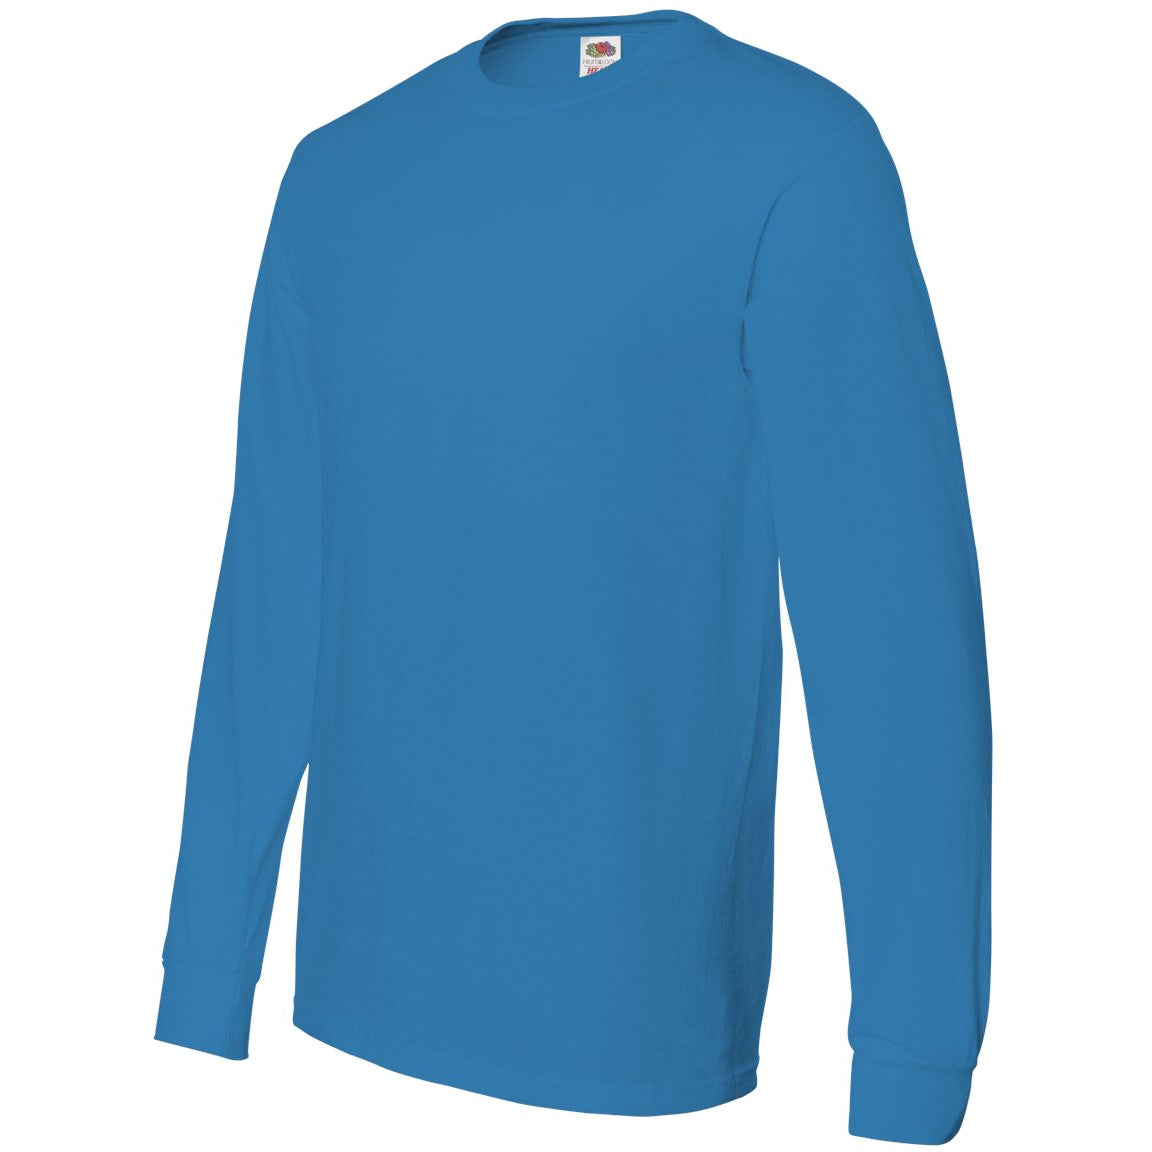 Fruit Of The Loom Long Sleeve Cotton T Shirt For Your School